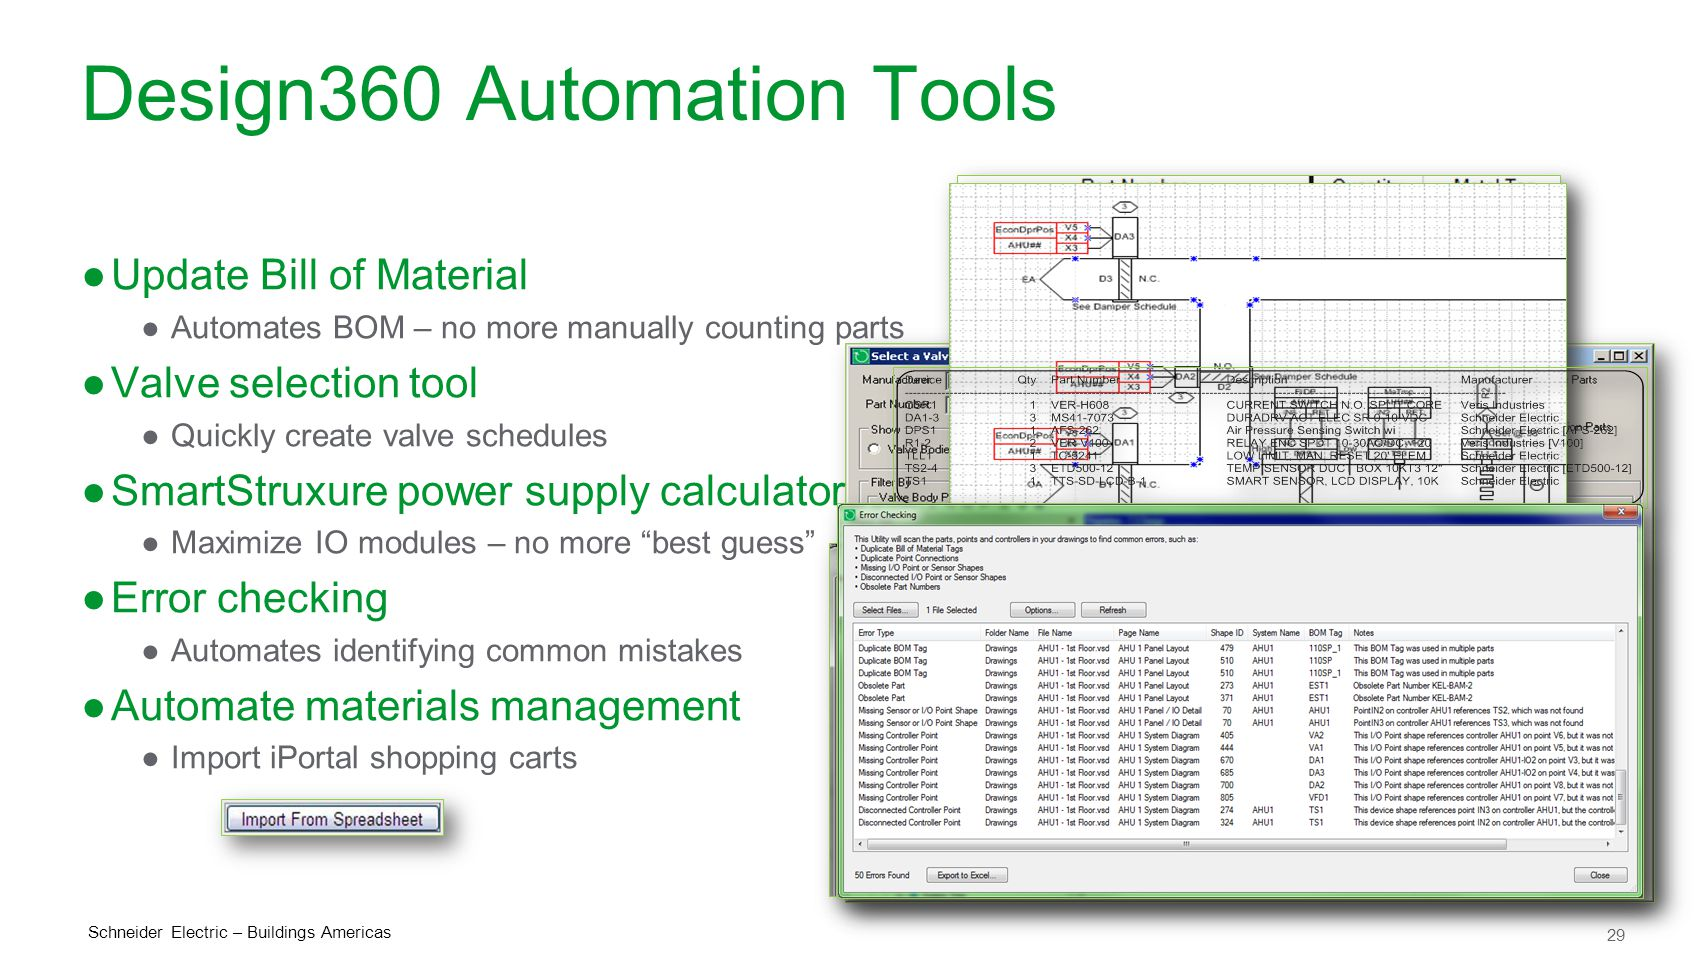 Design360 Automation Tools